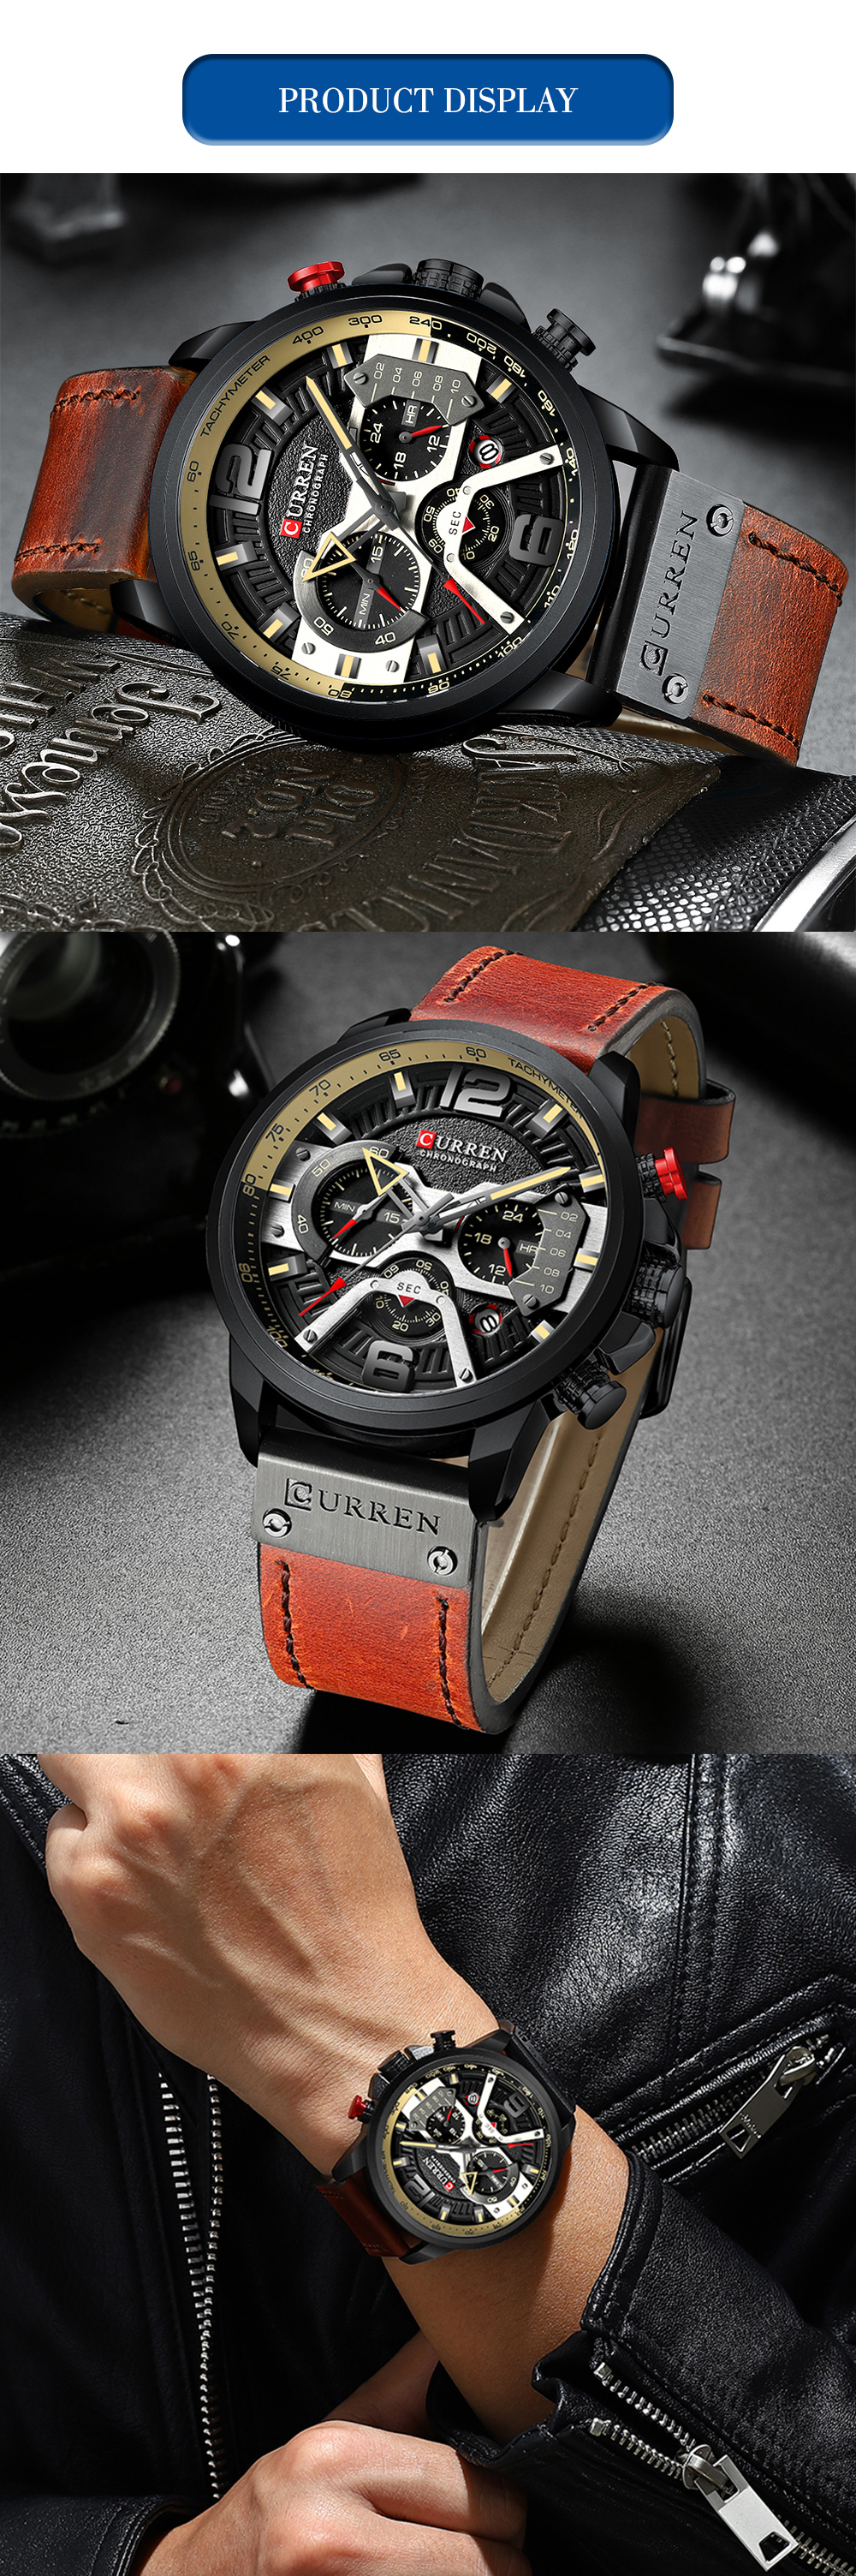 HTB1A h5KwHqK1RjSZFPq6AwapXat CURREN Casual Sport Watches for Men Blue Top Brand Luxury Military Leather Wrist Watch Man Clock Fashion Chronograph Wristwatch